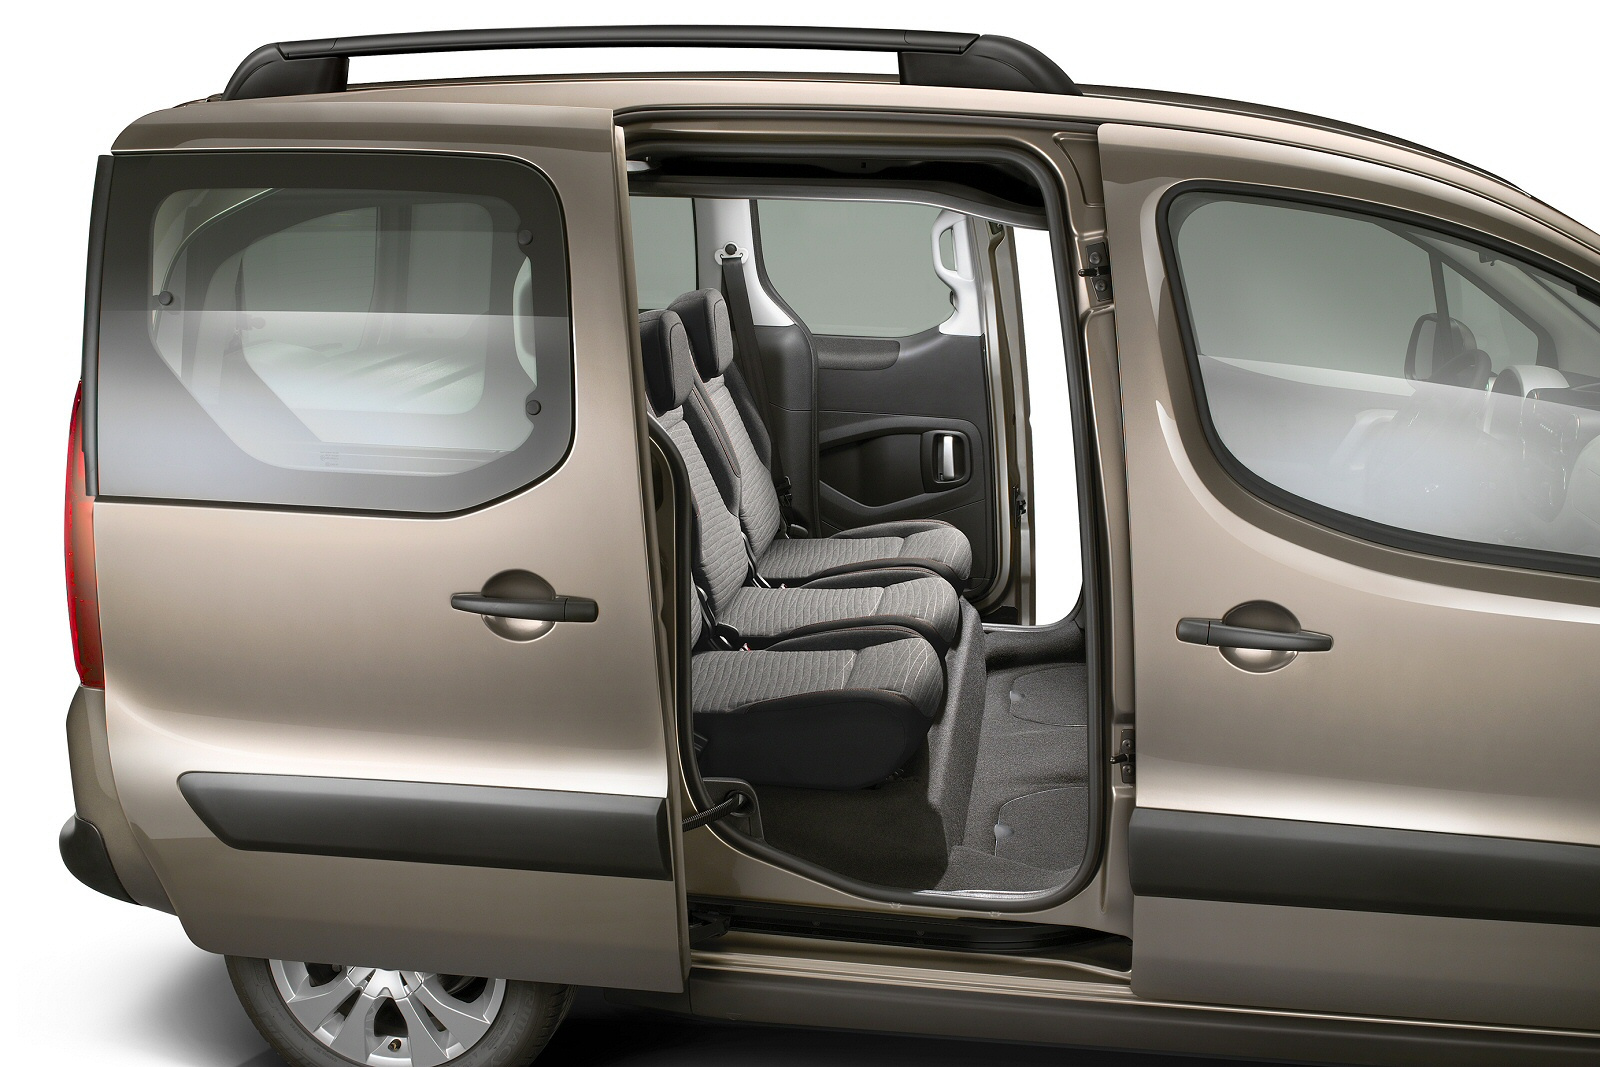 new citroen berlingo multispace for sale 2018 deals robins and day. Black Bedroom Furniture Sets. Home Design Ideas